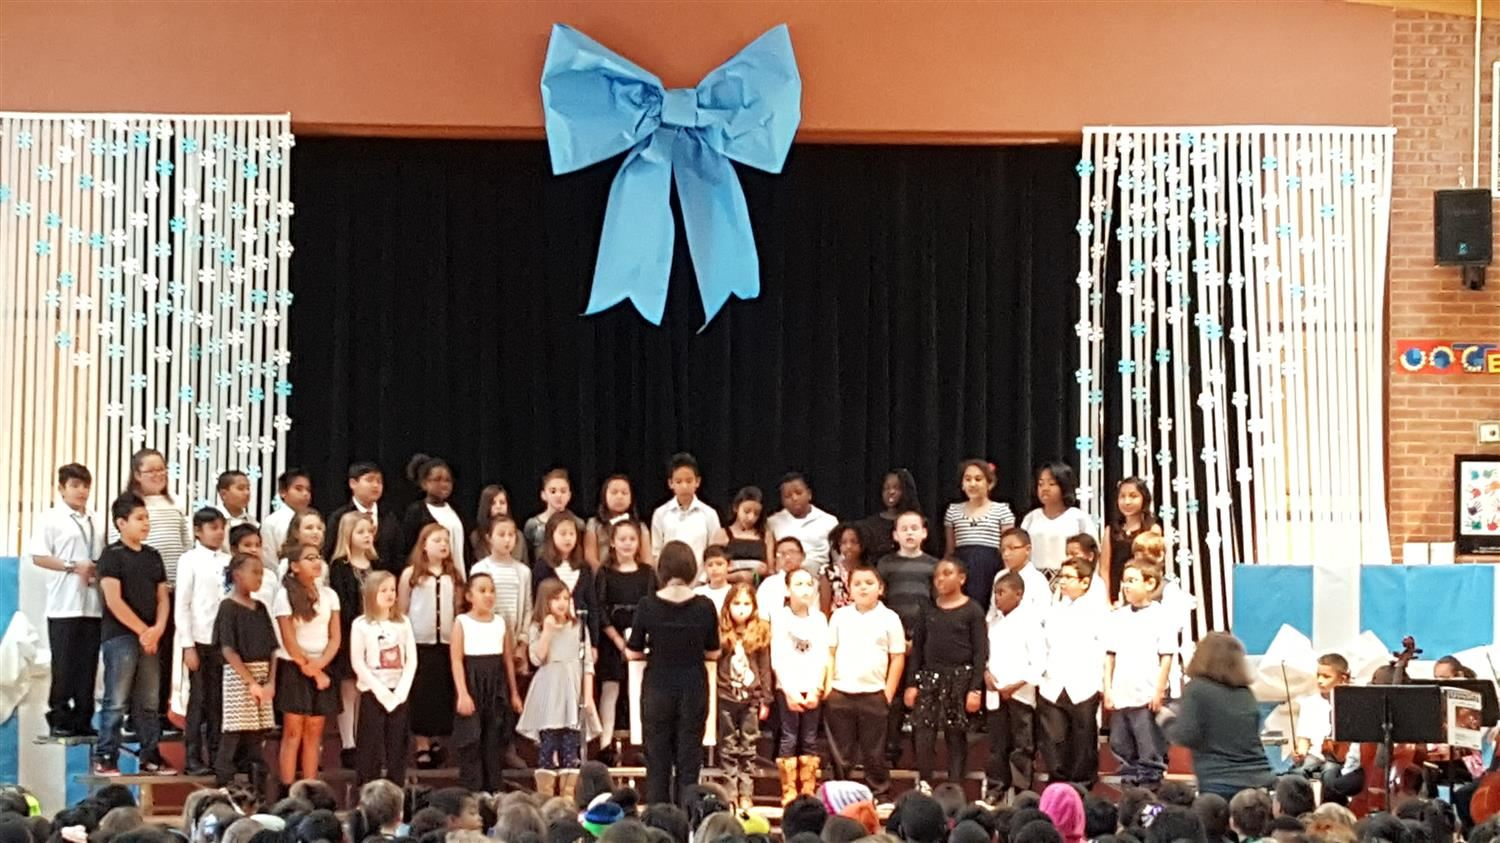 Choir students performing at a school concert